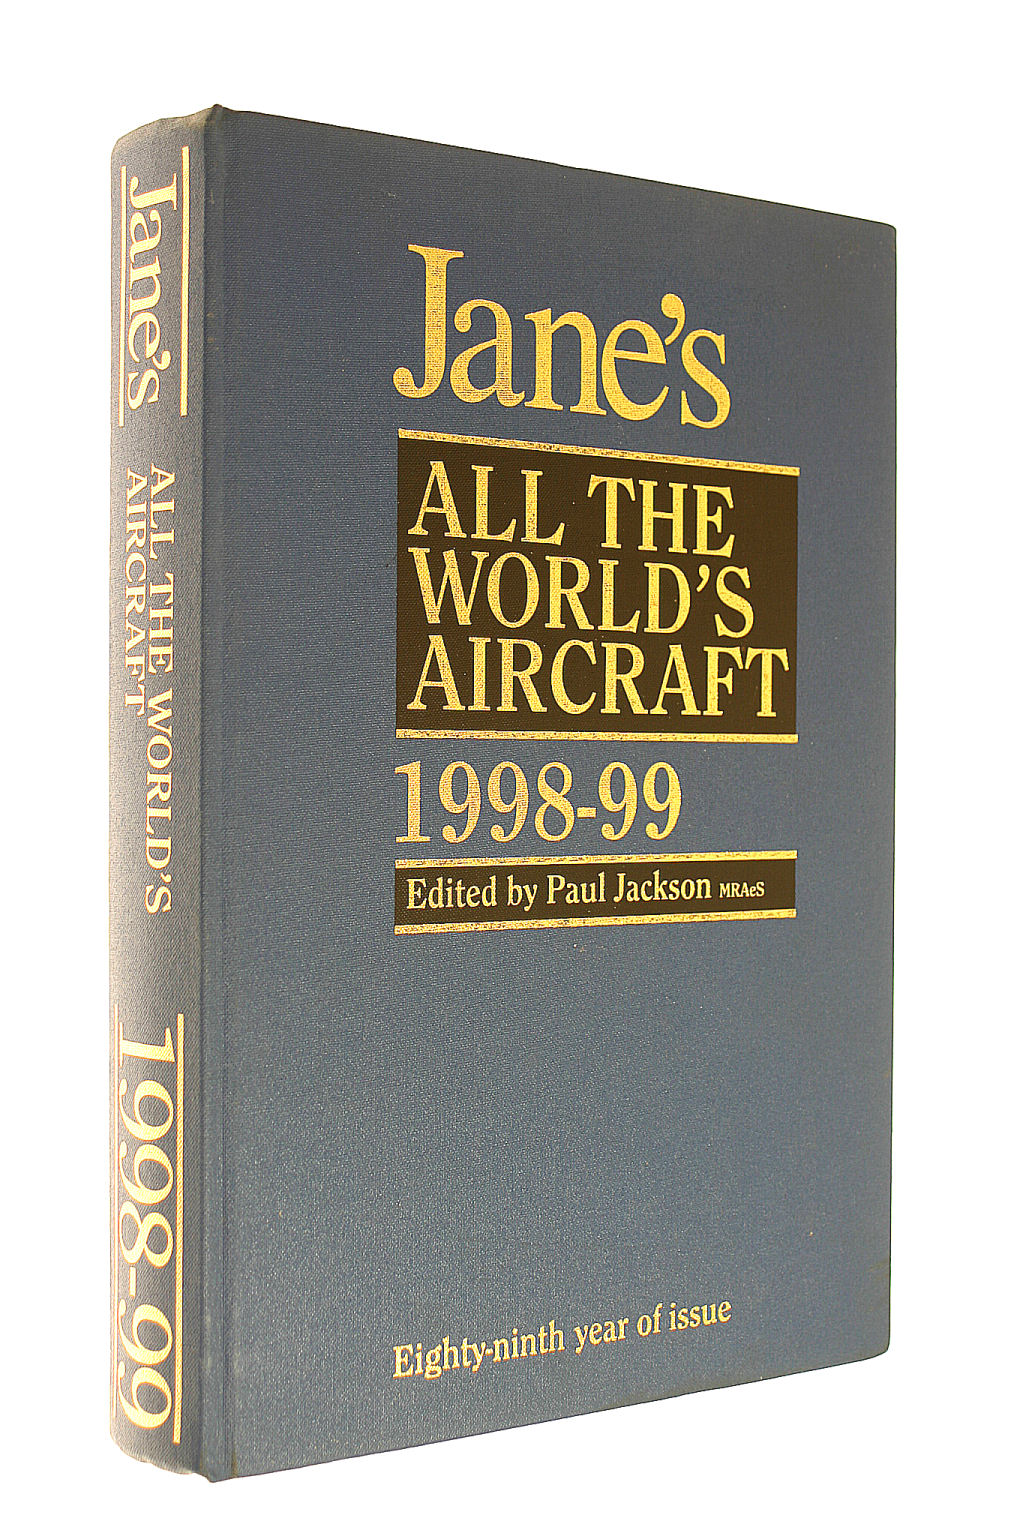 Image for Jane's All the World's Aircraft 1998-99